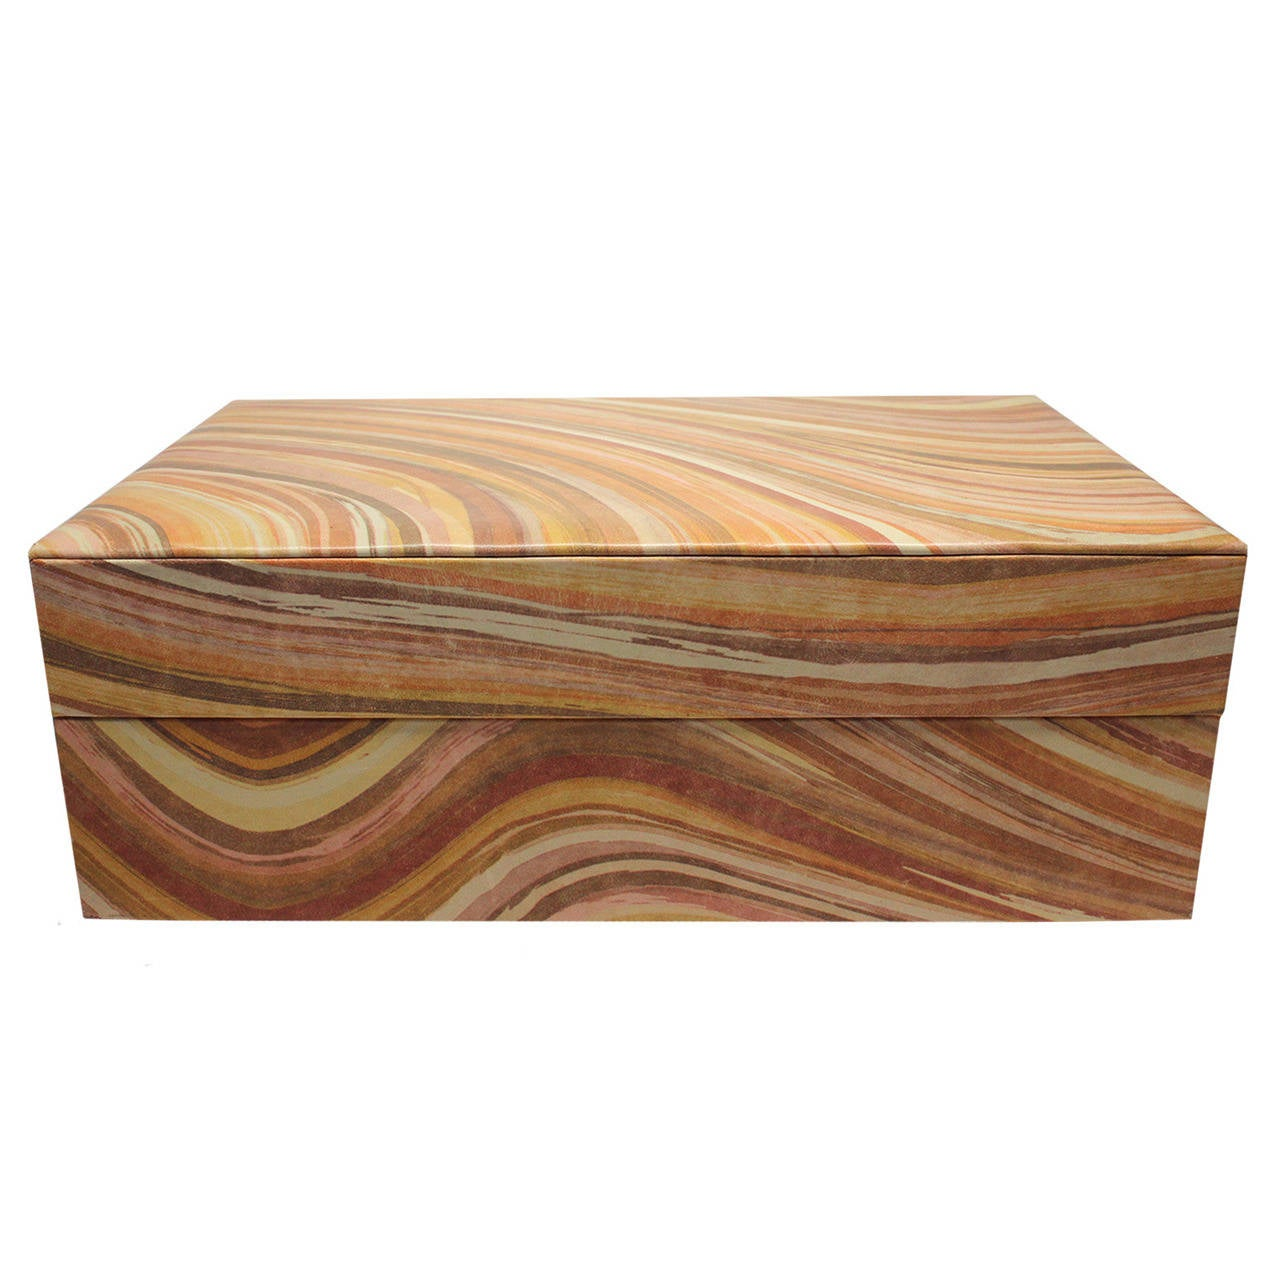 Paul Smith LeatherWood Jewelry Box at 1stdibs